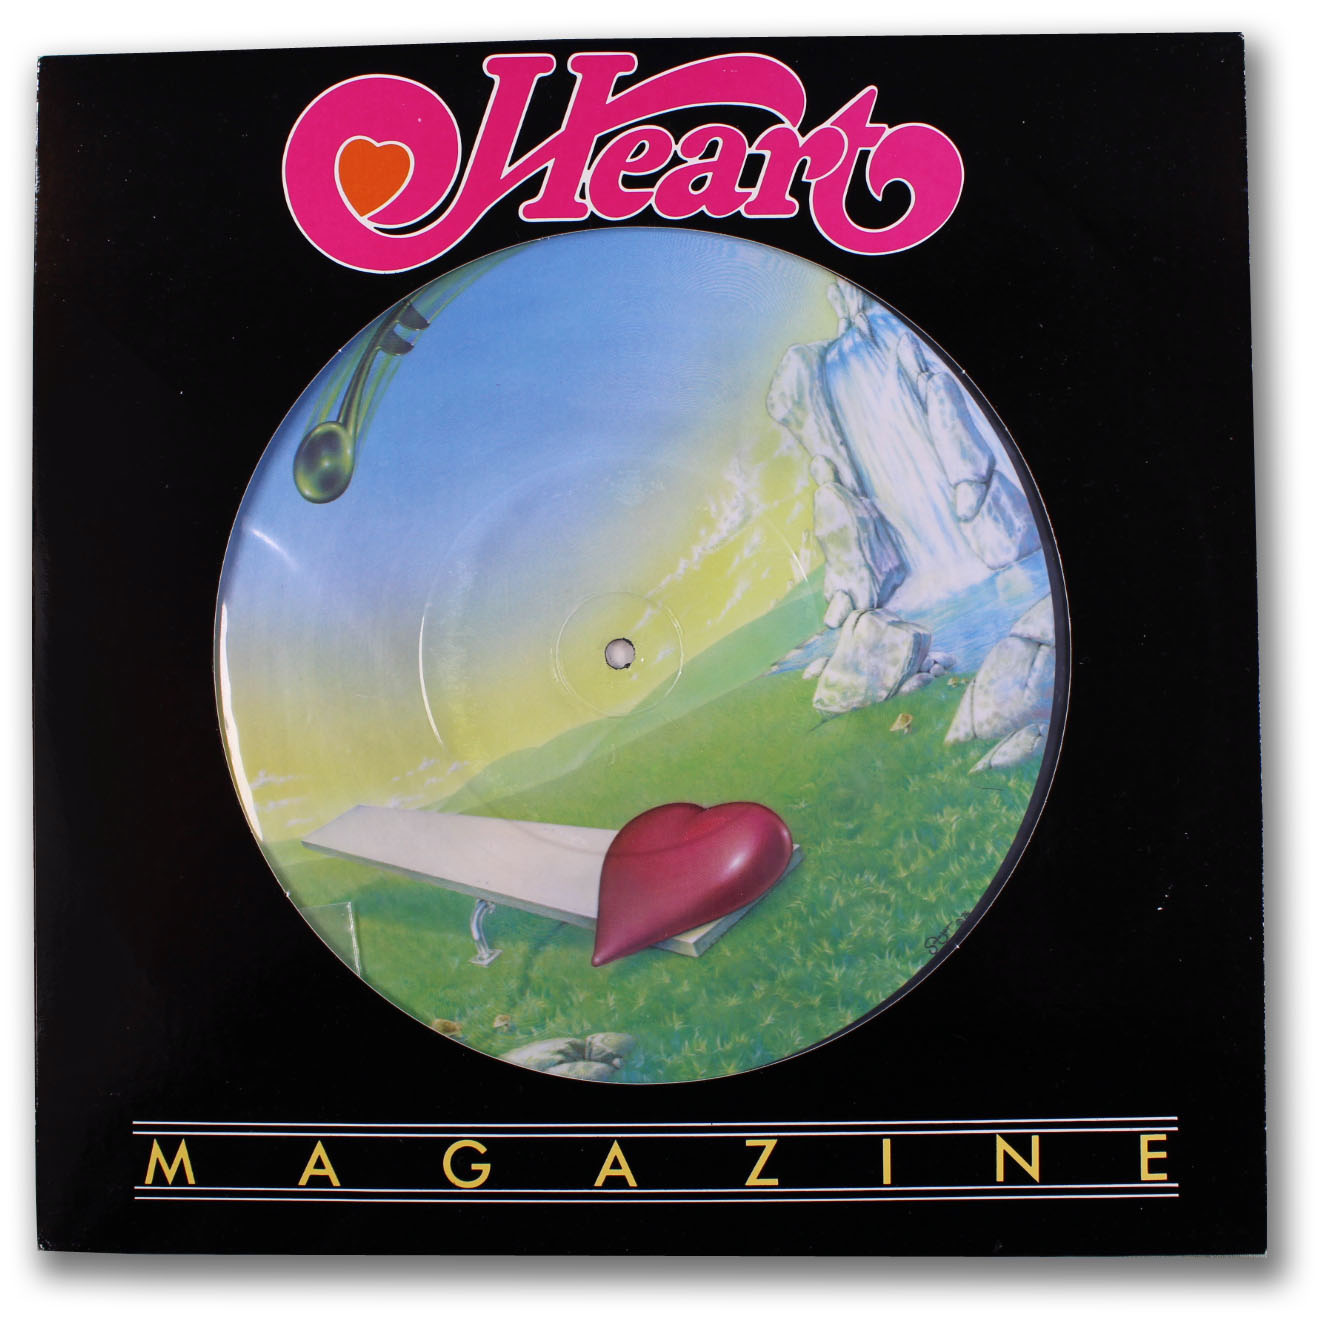 Heart, Magazine Picture Disc